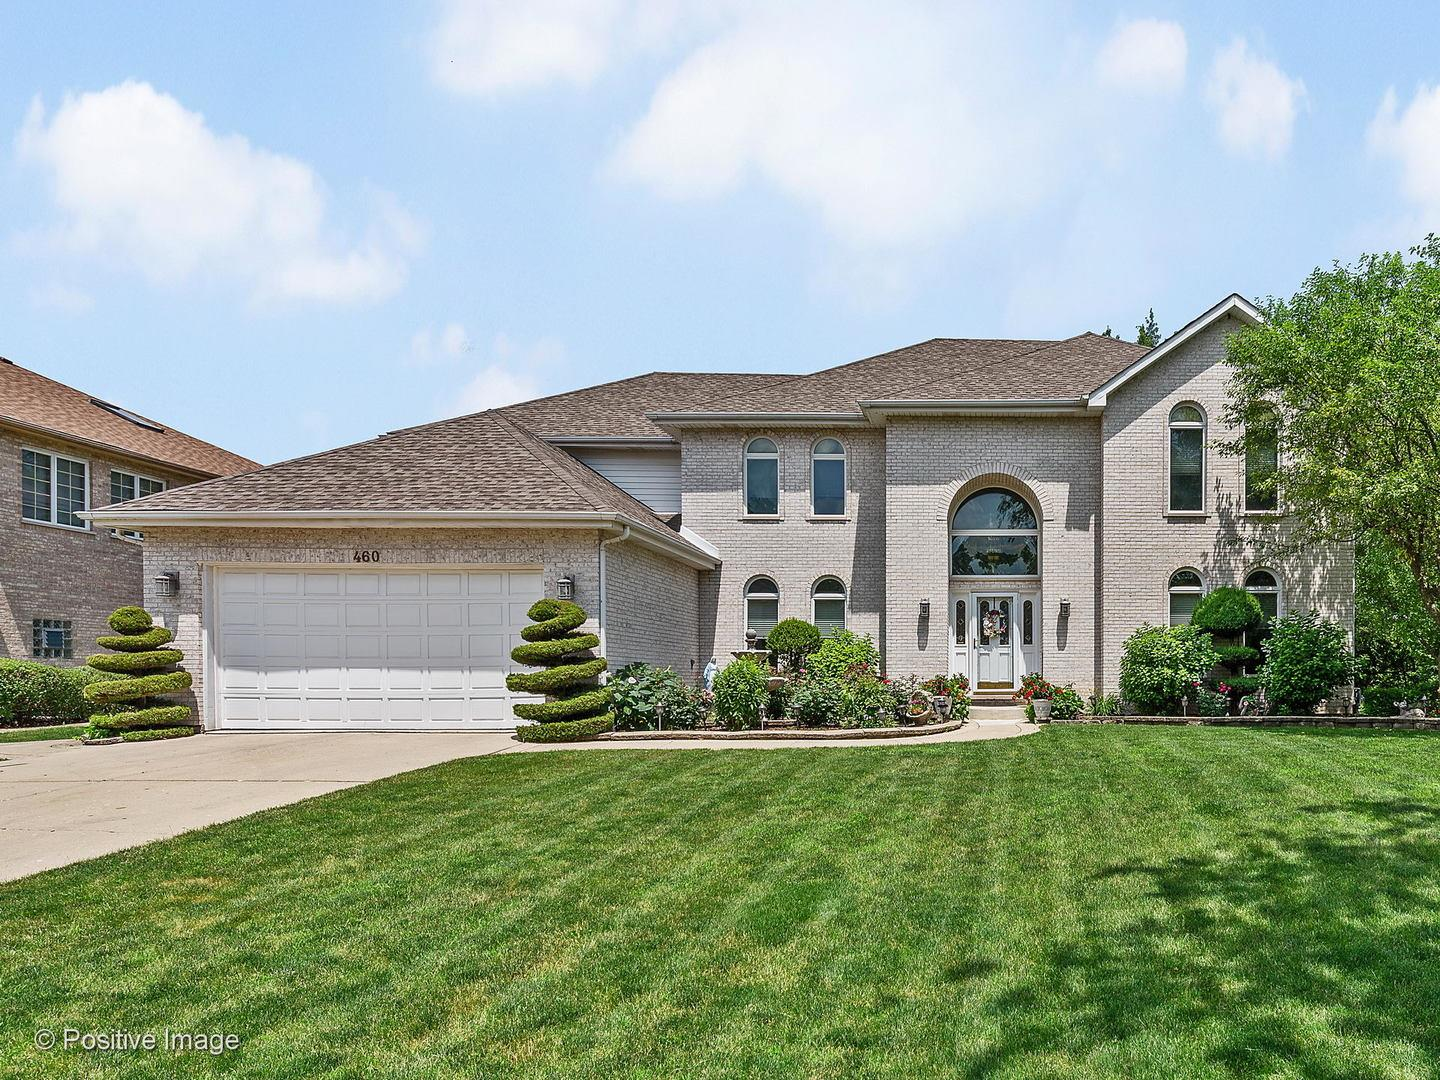 460 FORD Lane, Bartlett, IL 60103 - #: 10885761